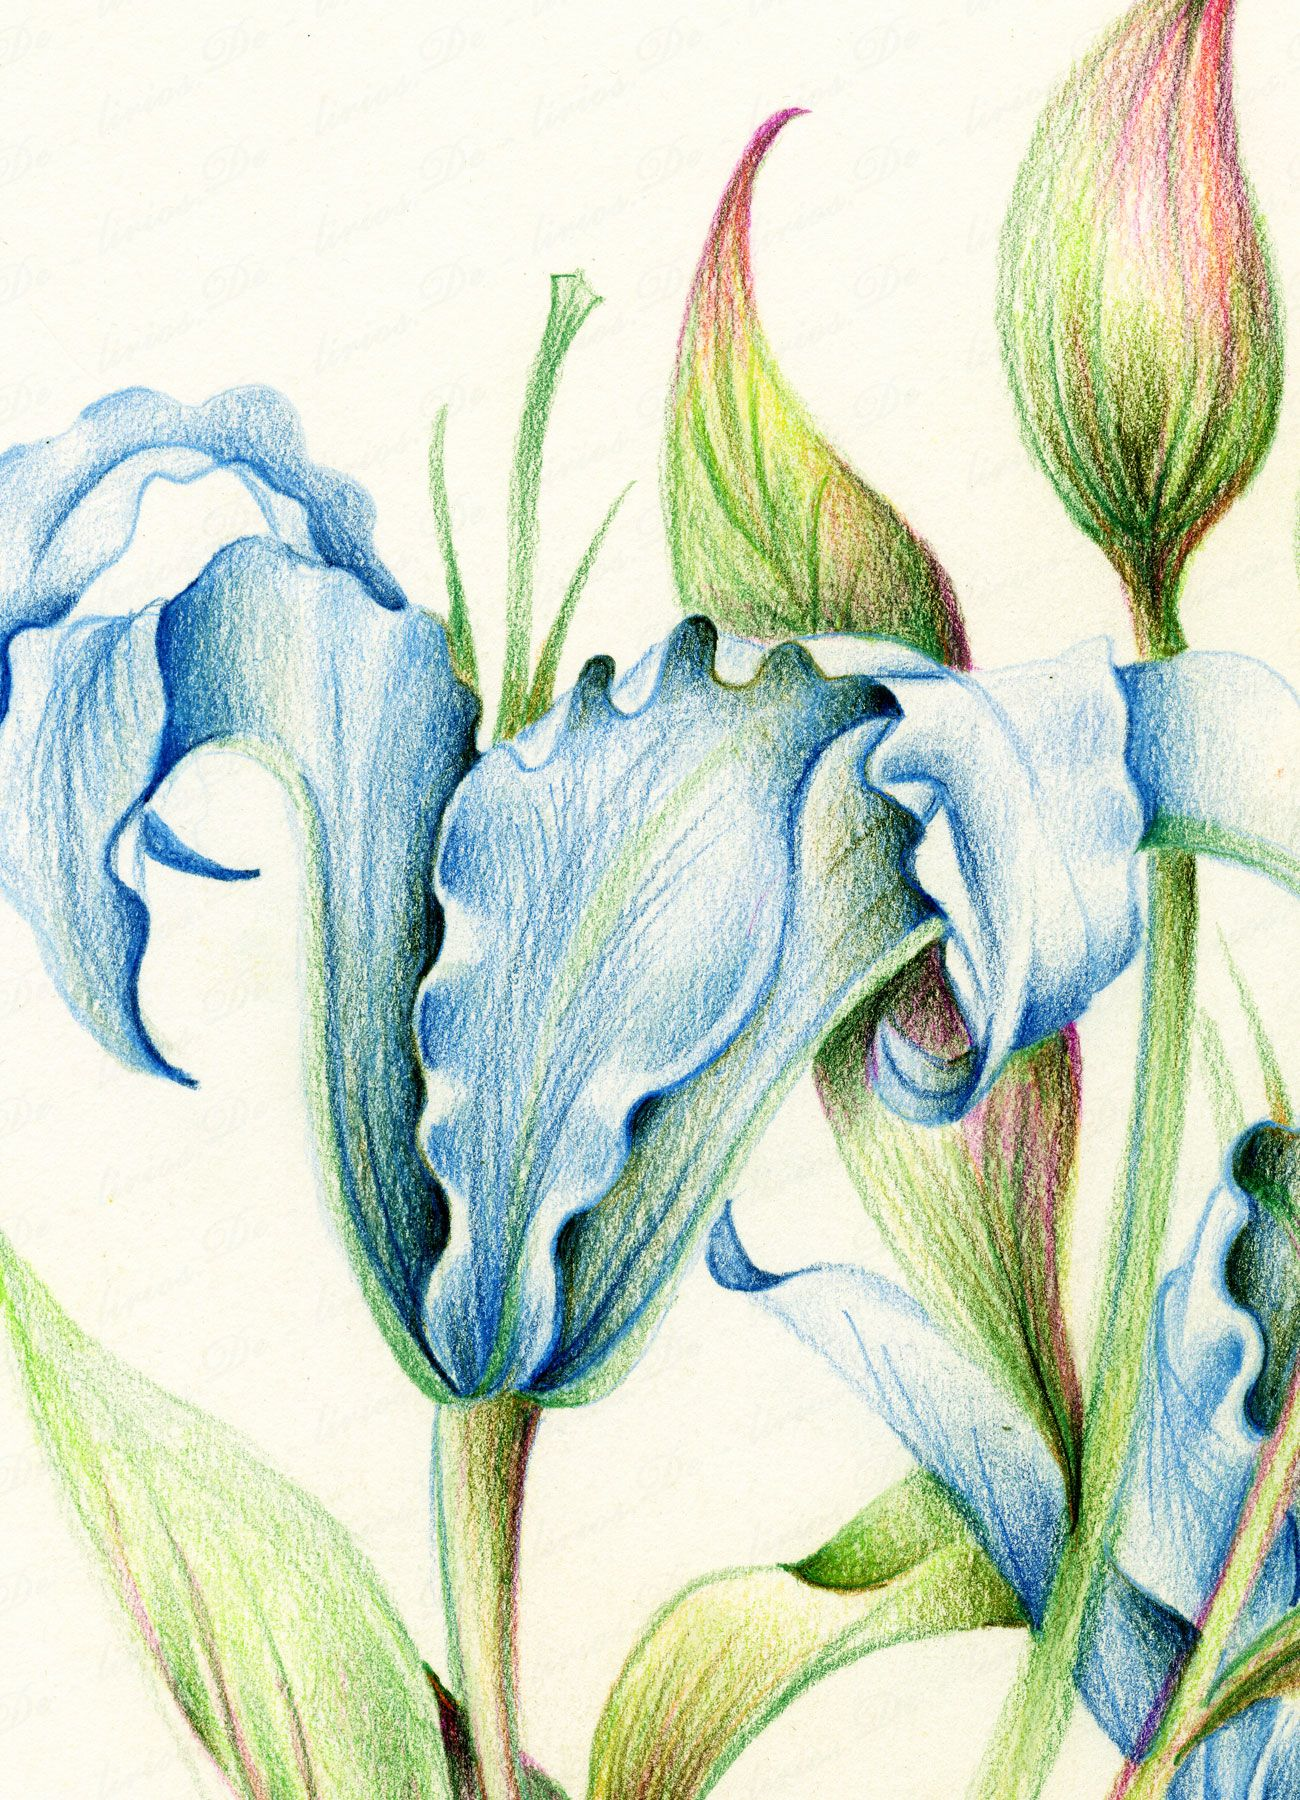 Diana arias colored pencil colored pencil artwork pencil drawings of flowers